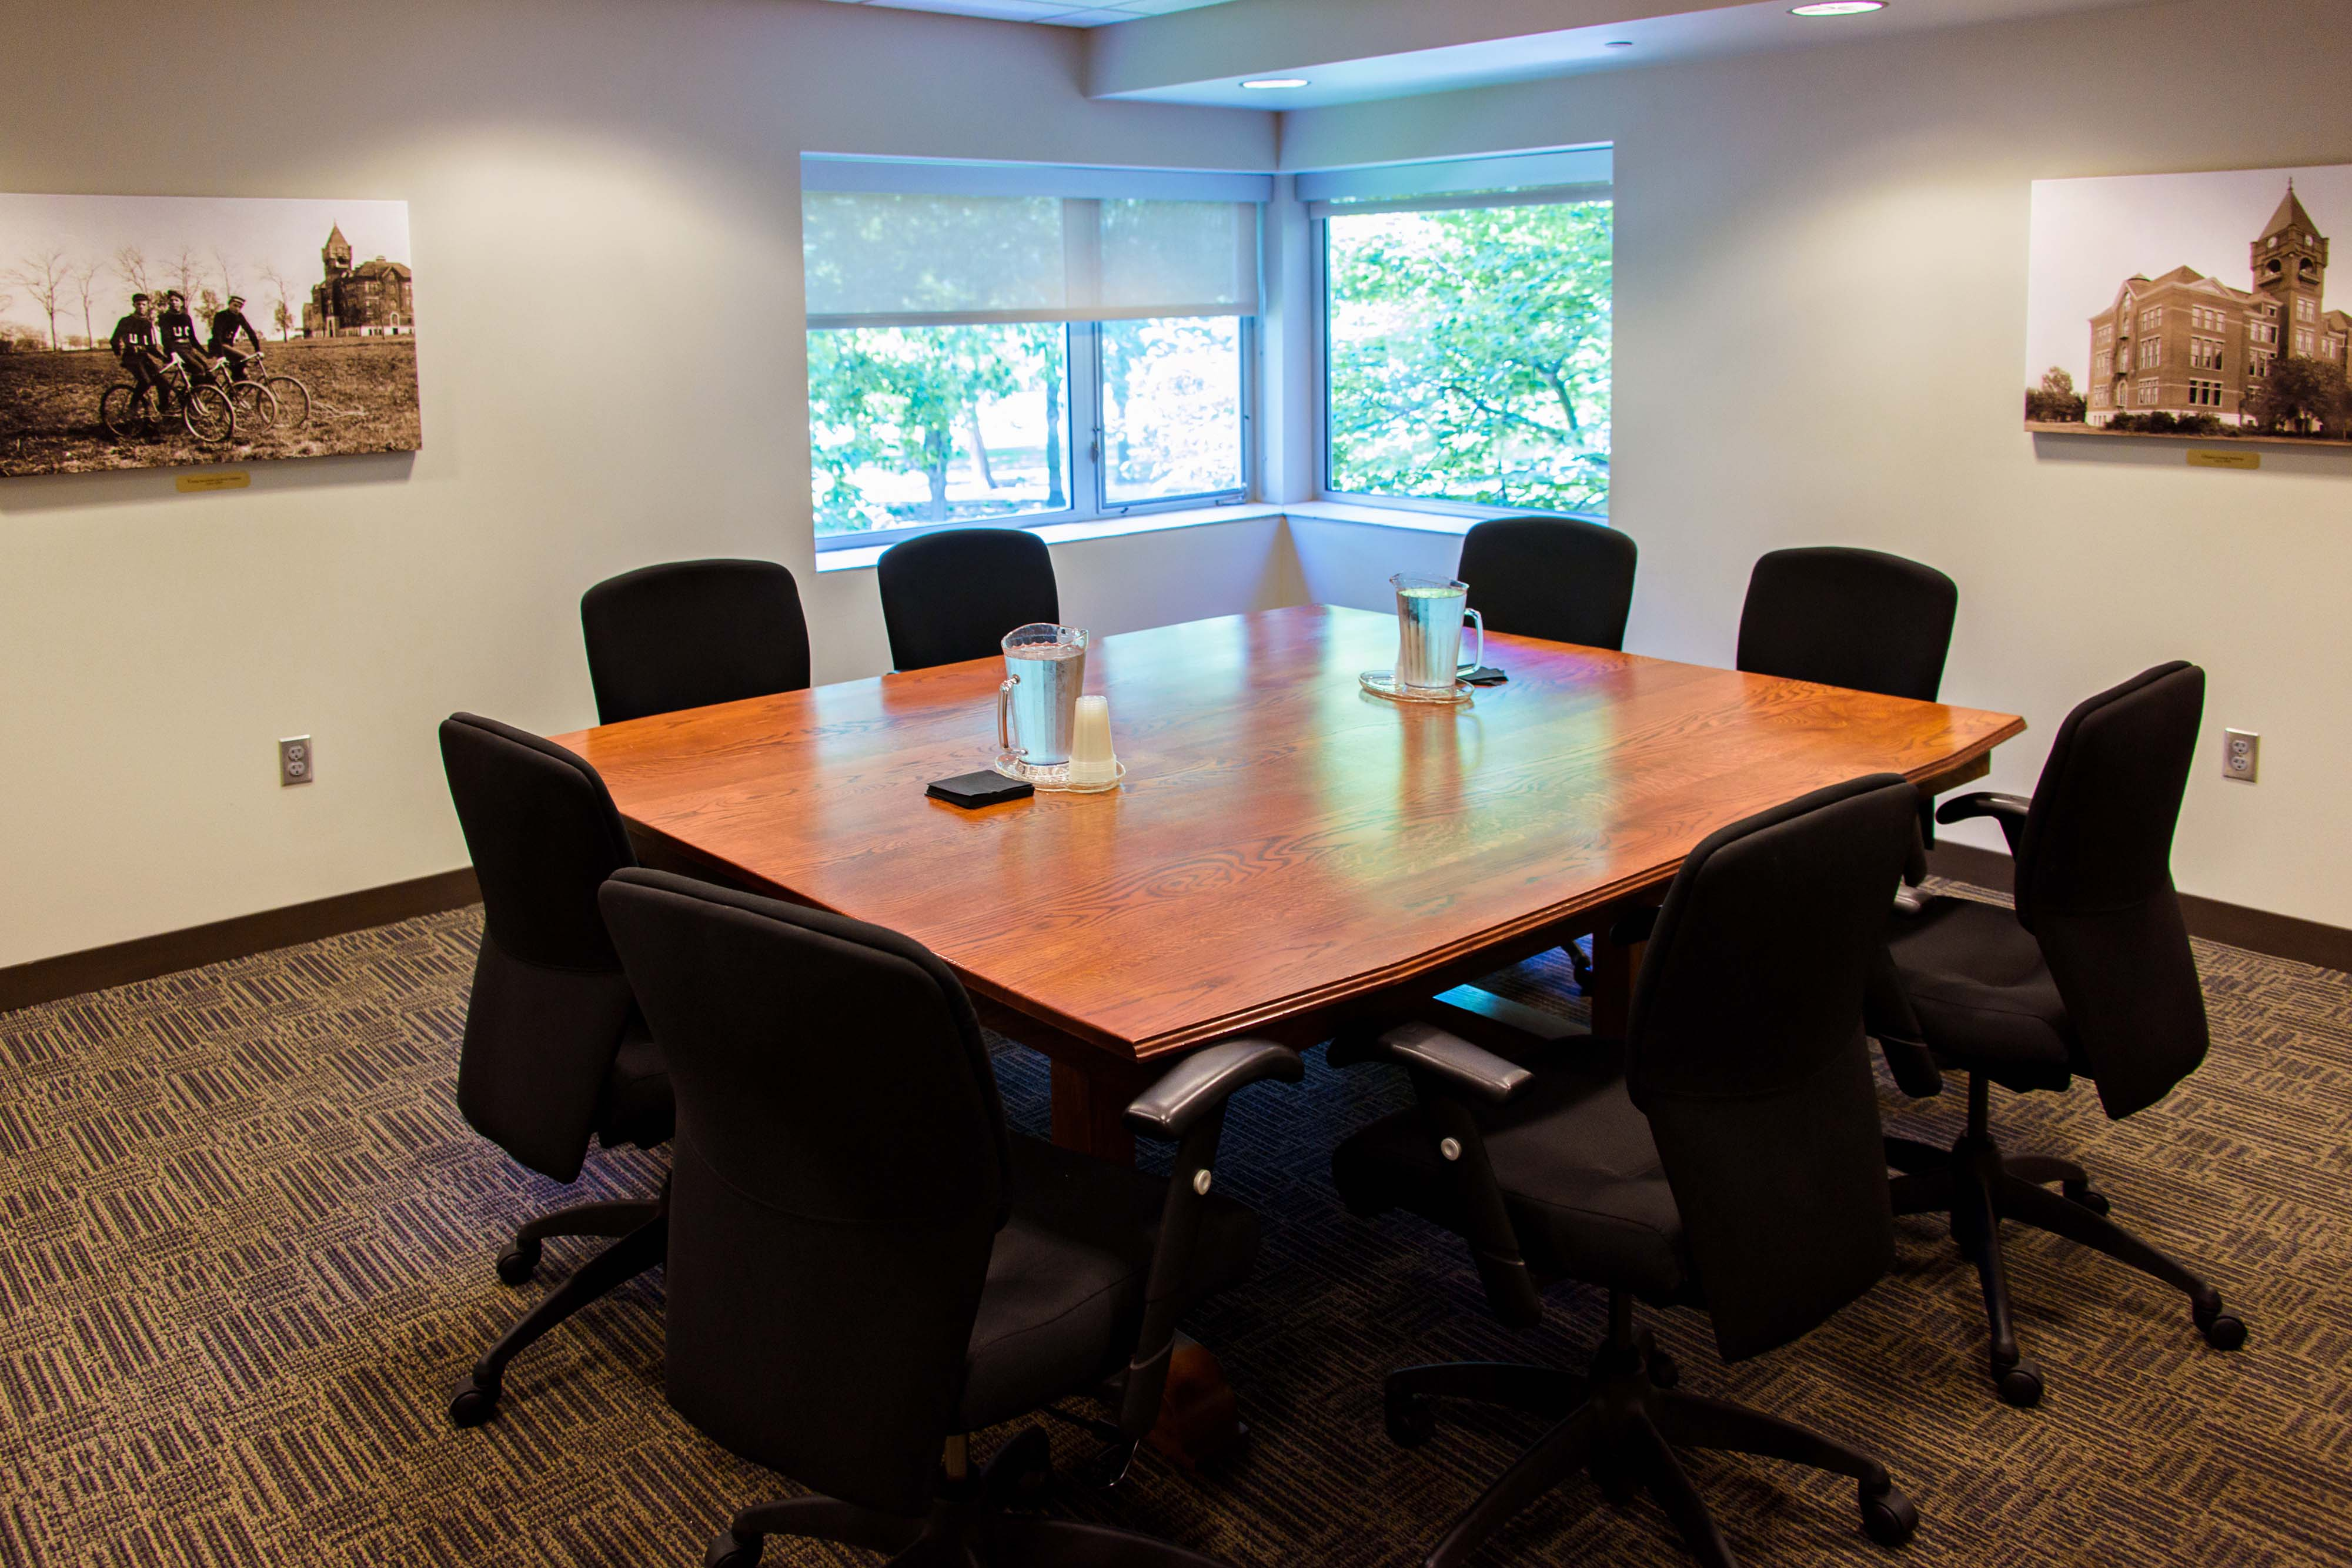 A view of the Bollinger Conference Room that shows its corner window, table, and seating